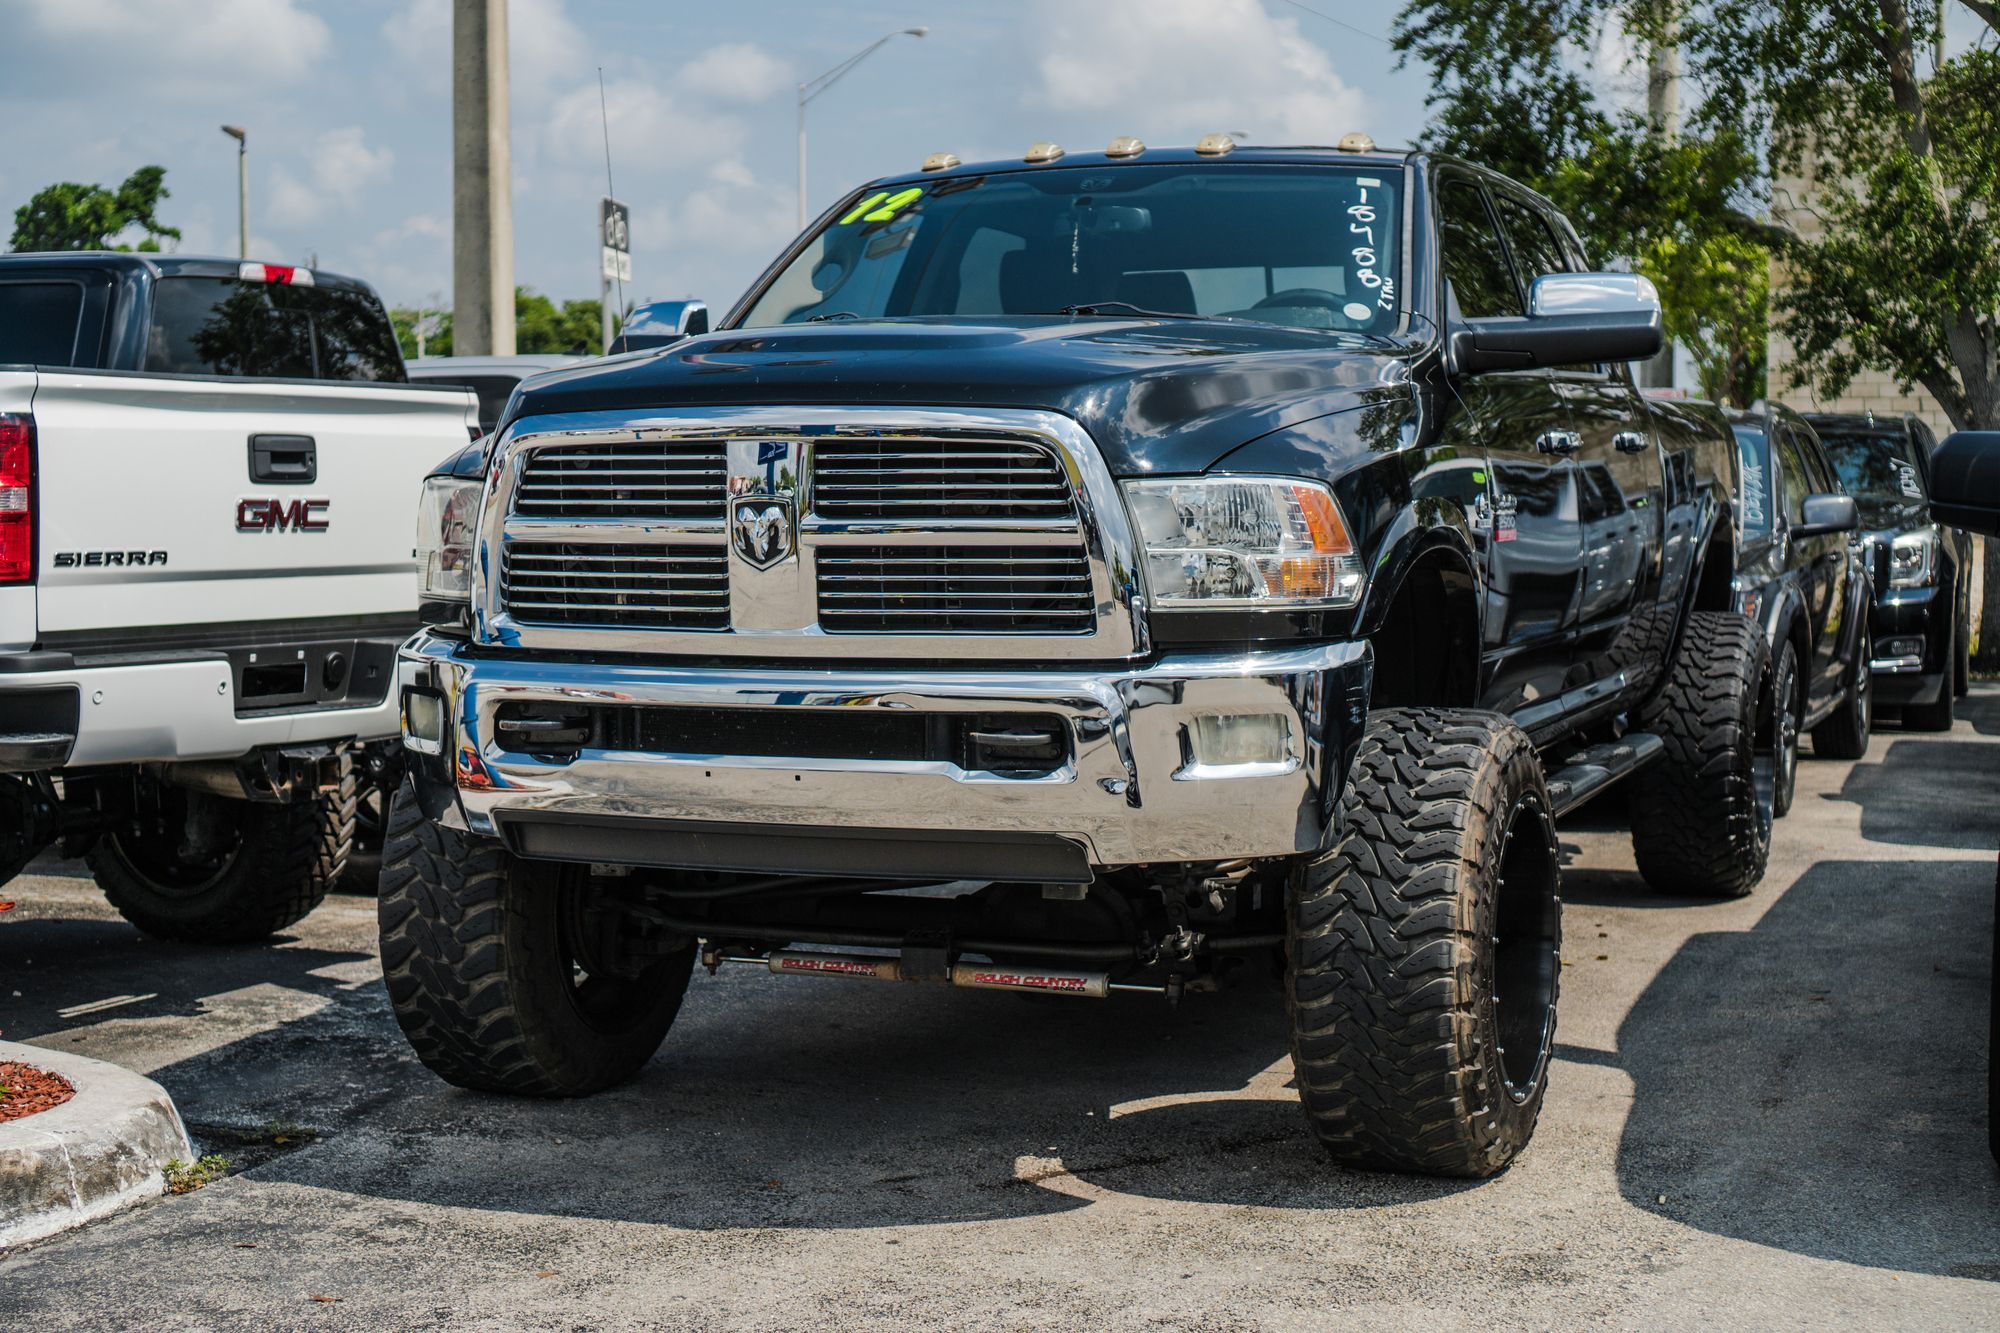 Come Check Out This Custom Lifted Dodge Ram 2500 Many More Trucks At Michael S Auto Sales Customliftedtrucks